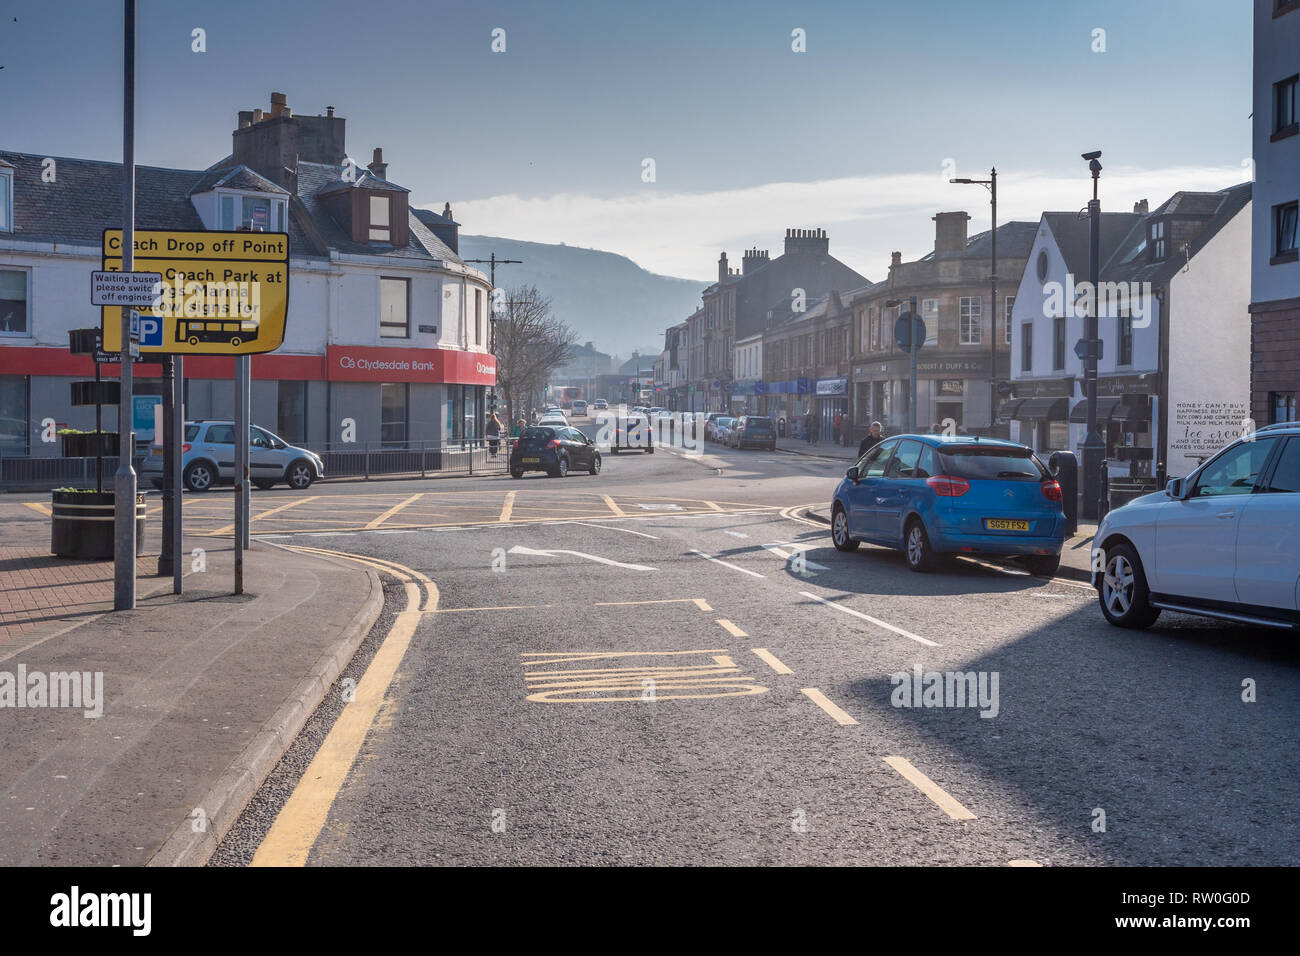 Largs, Scotland, UK - February 27, 2019: Unusually warm February weather looking up Main Street Largs on the West coast of Scotland with bright warm h - Stock Image